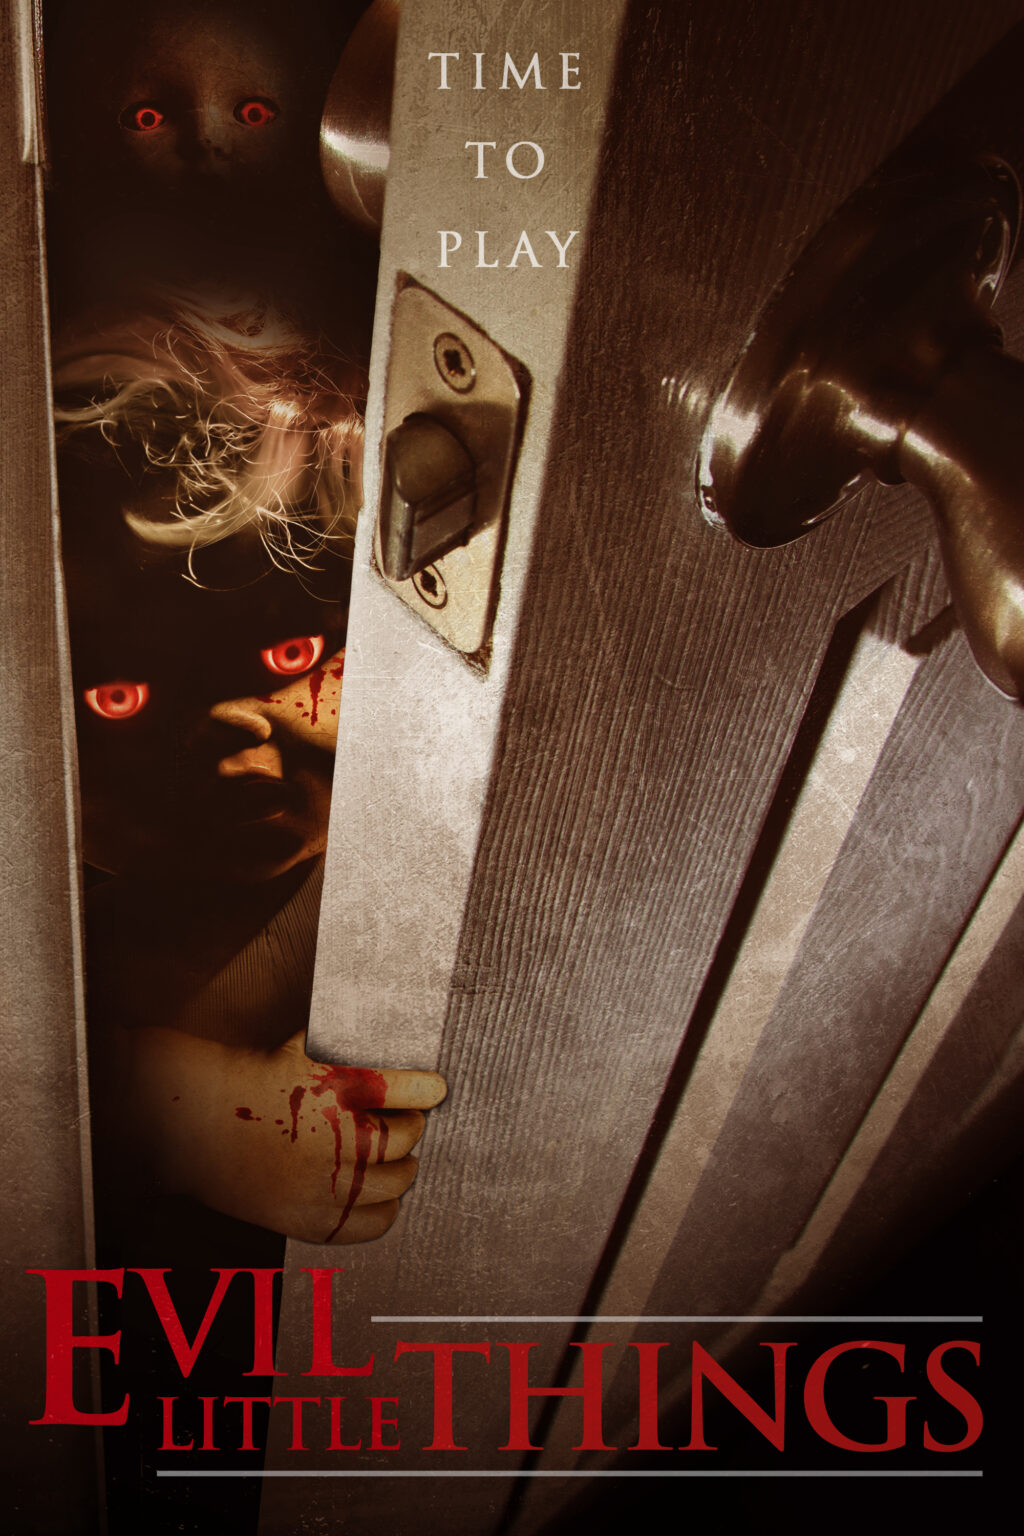 EvilLittleThings KeyArt 2x3 2000x3000 1024x1536 - Seriously Creepy Dolls Populate the Trailer for EVIL LITTLE THINGS